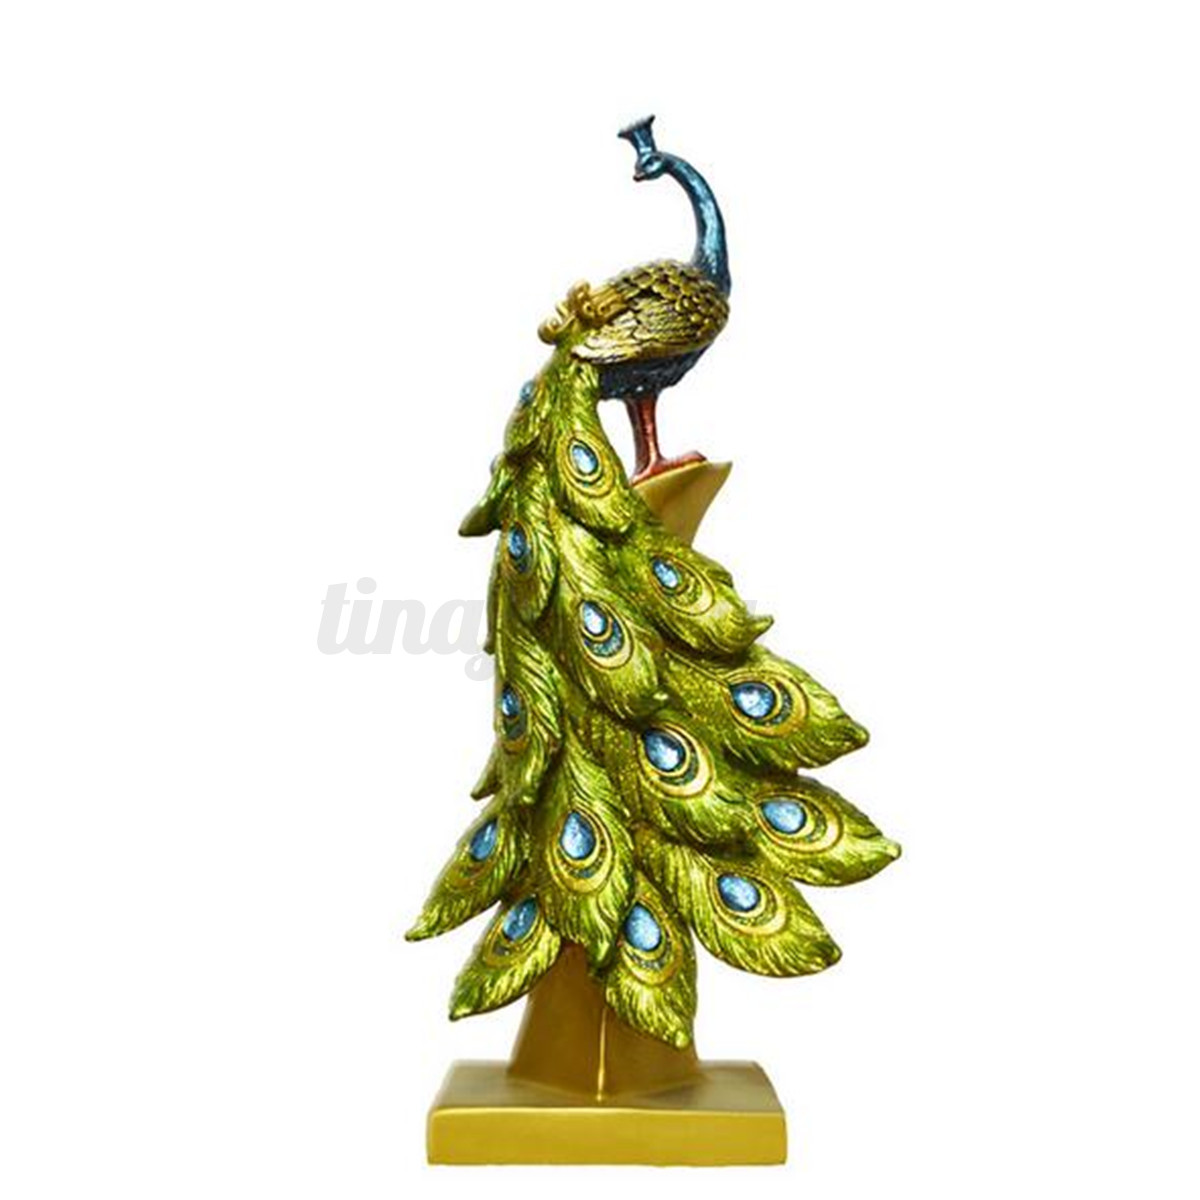 Painted Couple Peacock Wedding Gifts Unique Delicate Home: Exotic Resin Peacock Ornament Figurine Statue Craft